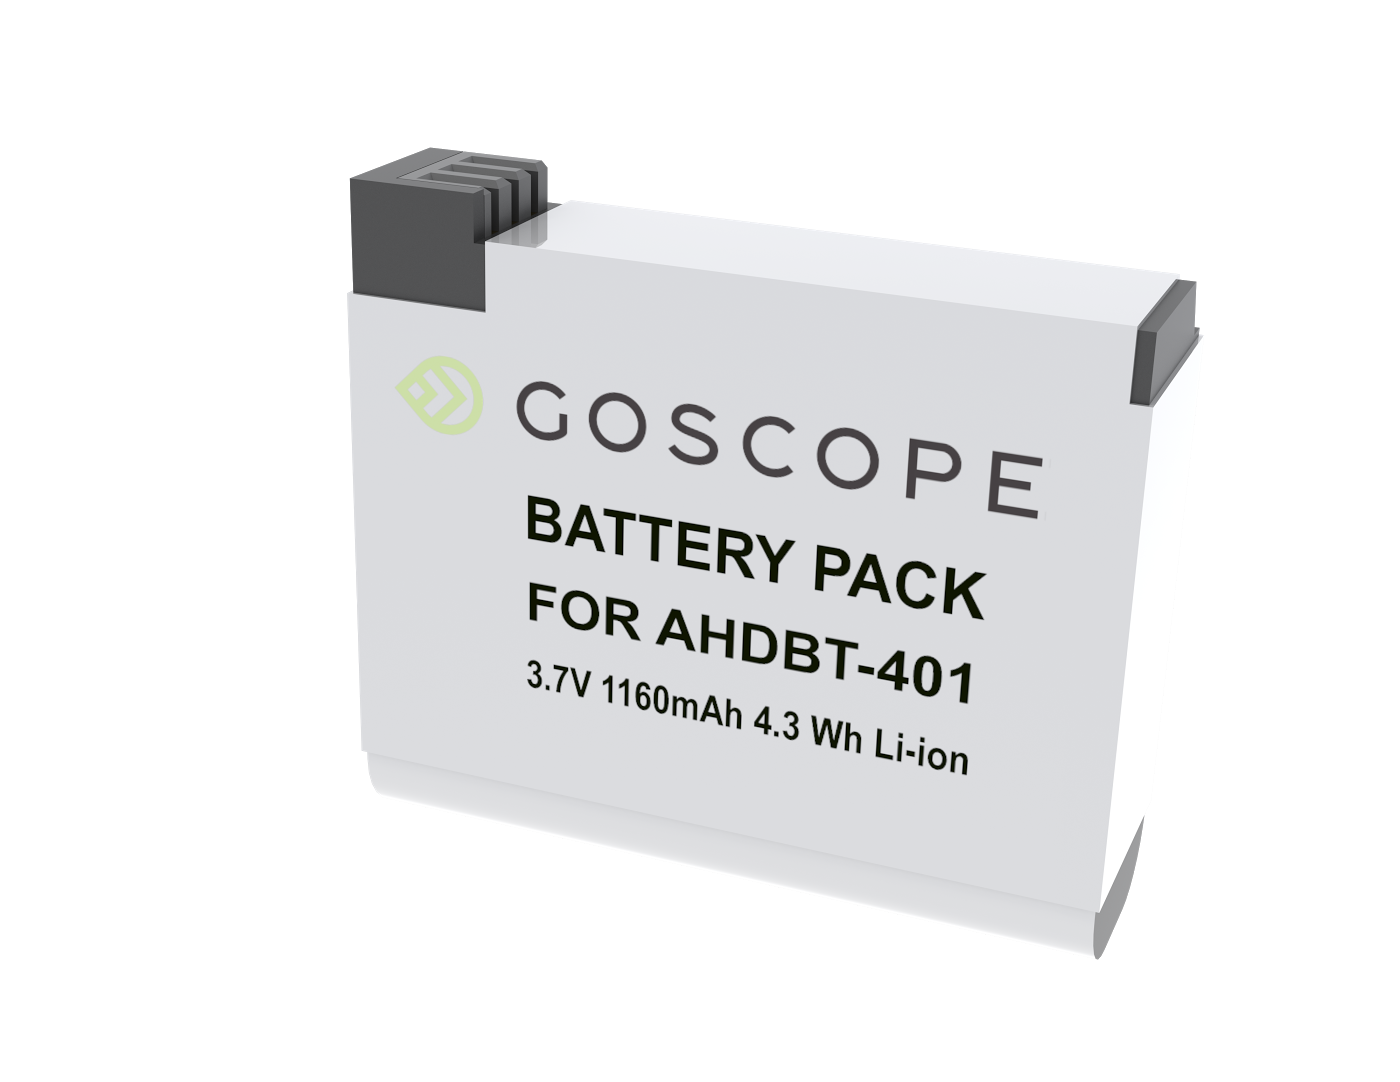 GoScope Dual Battery Charger for GoPro HERO4 - Includes Free Battery by GoScope on Jetset Times SHOP